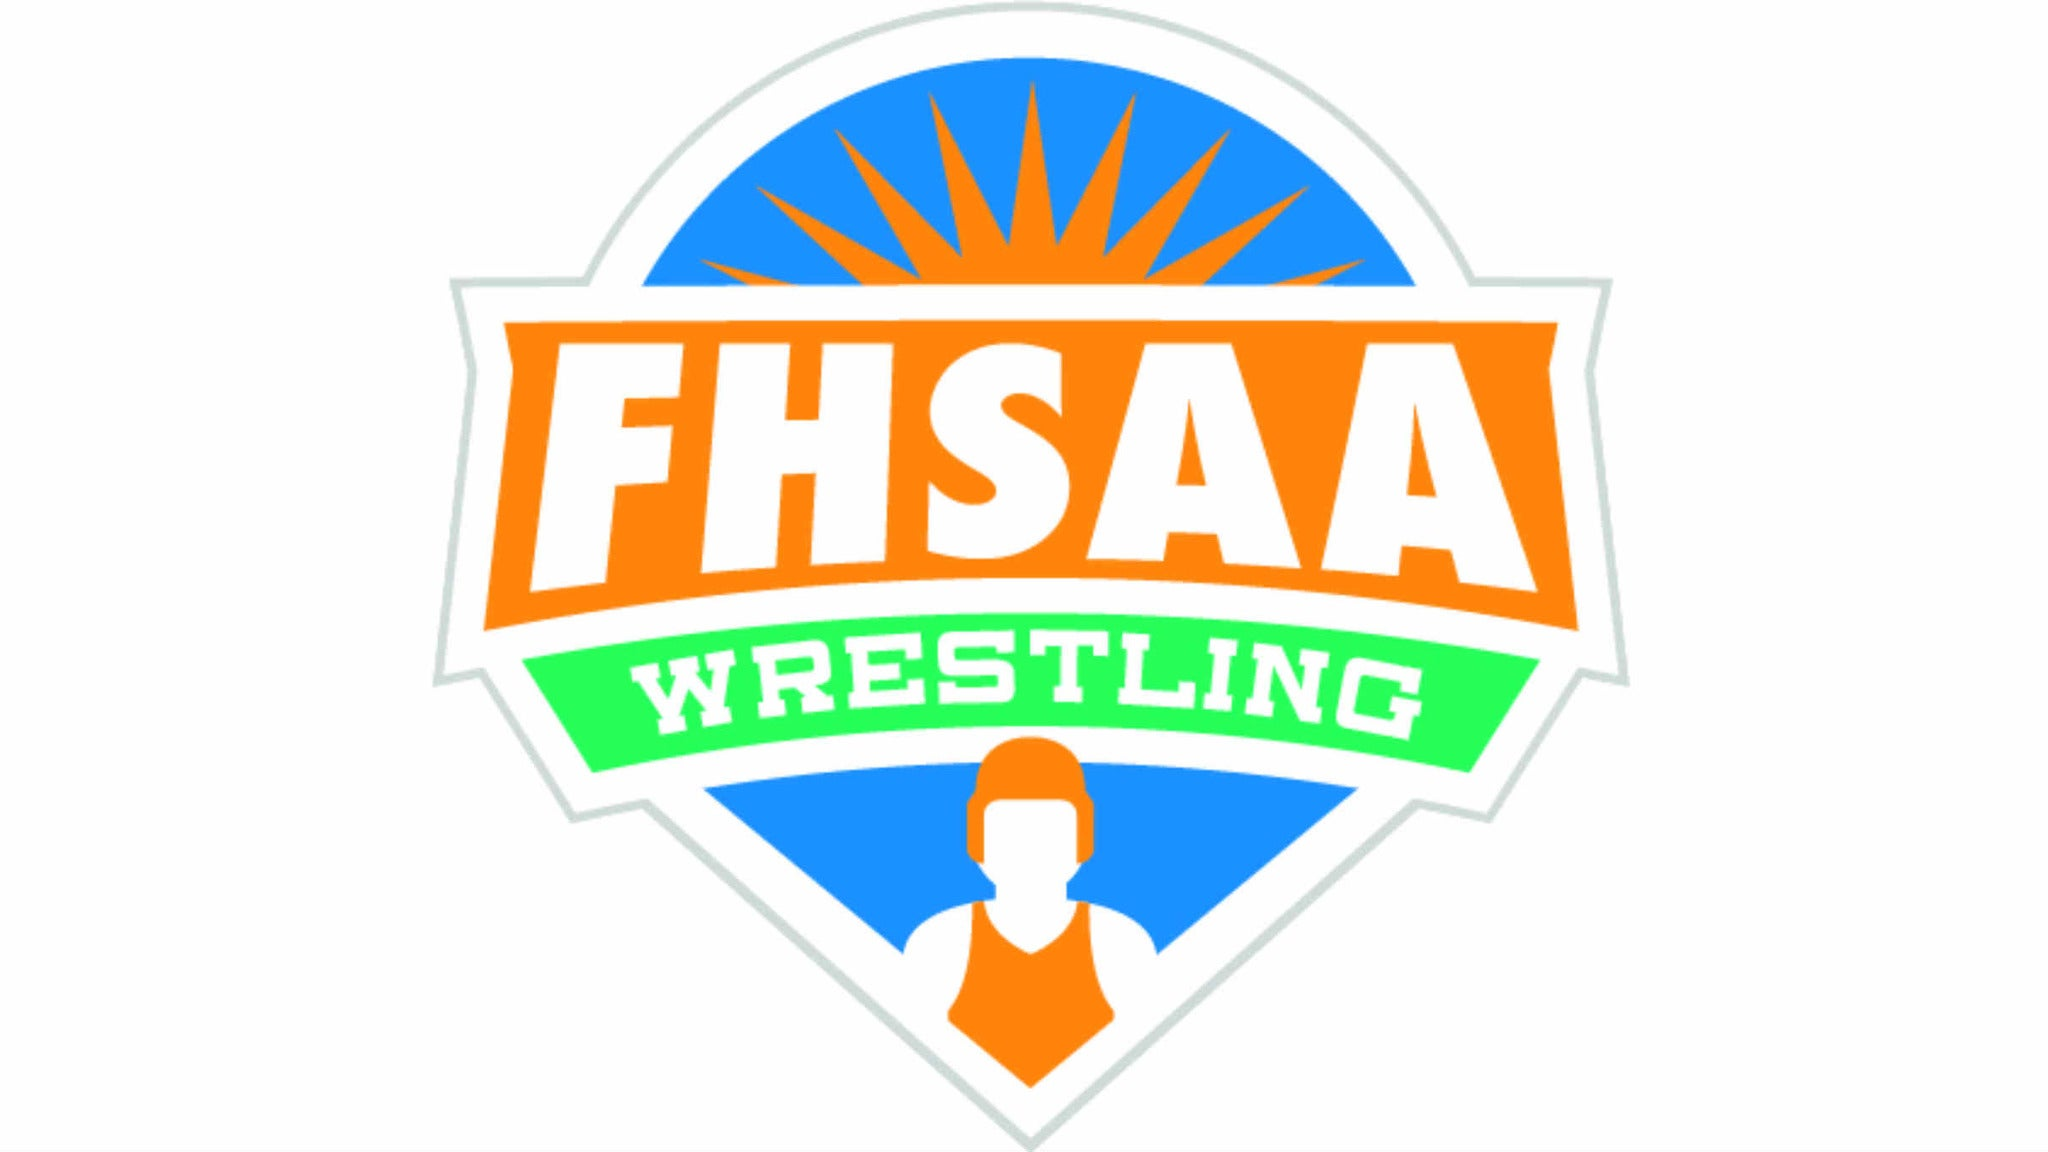 2018 FHSAA Wrestling Championship - All 4 Sessions